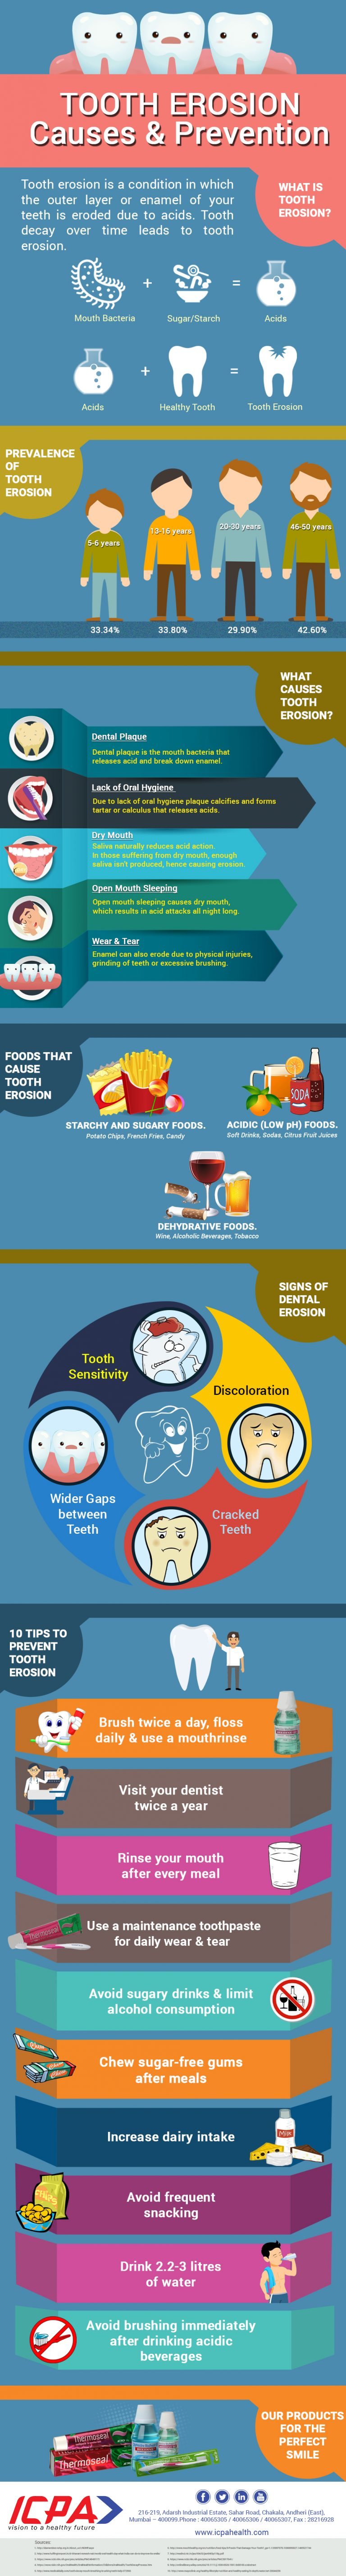 Tooth Erosion – Causes and Prevention Infographic